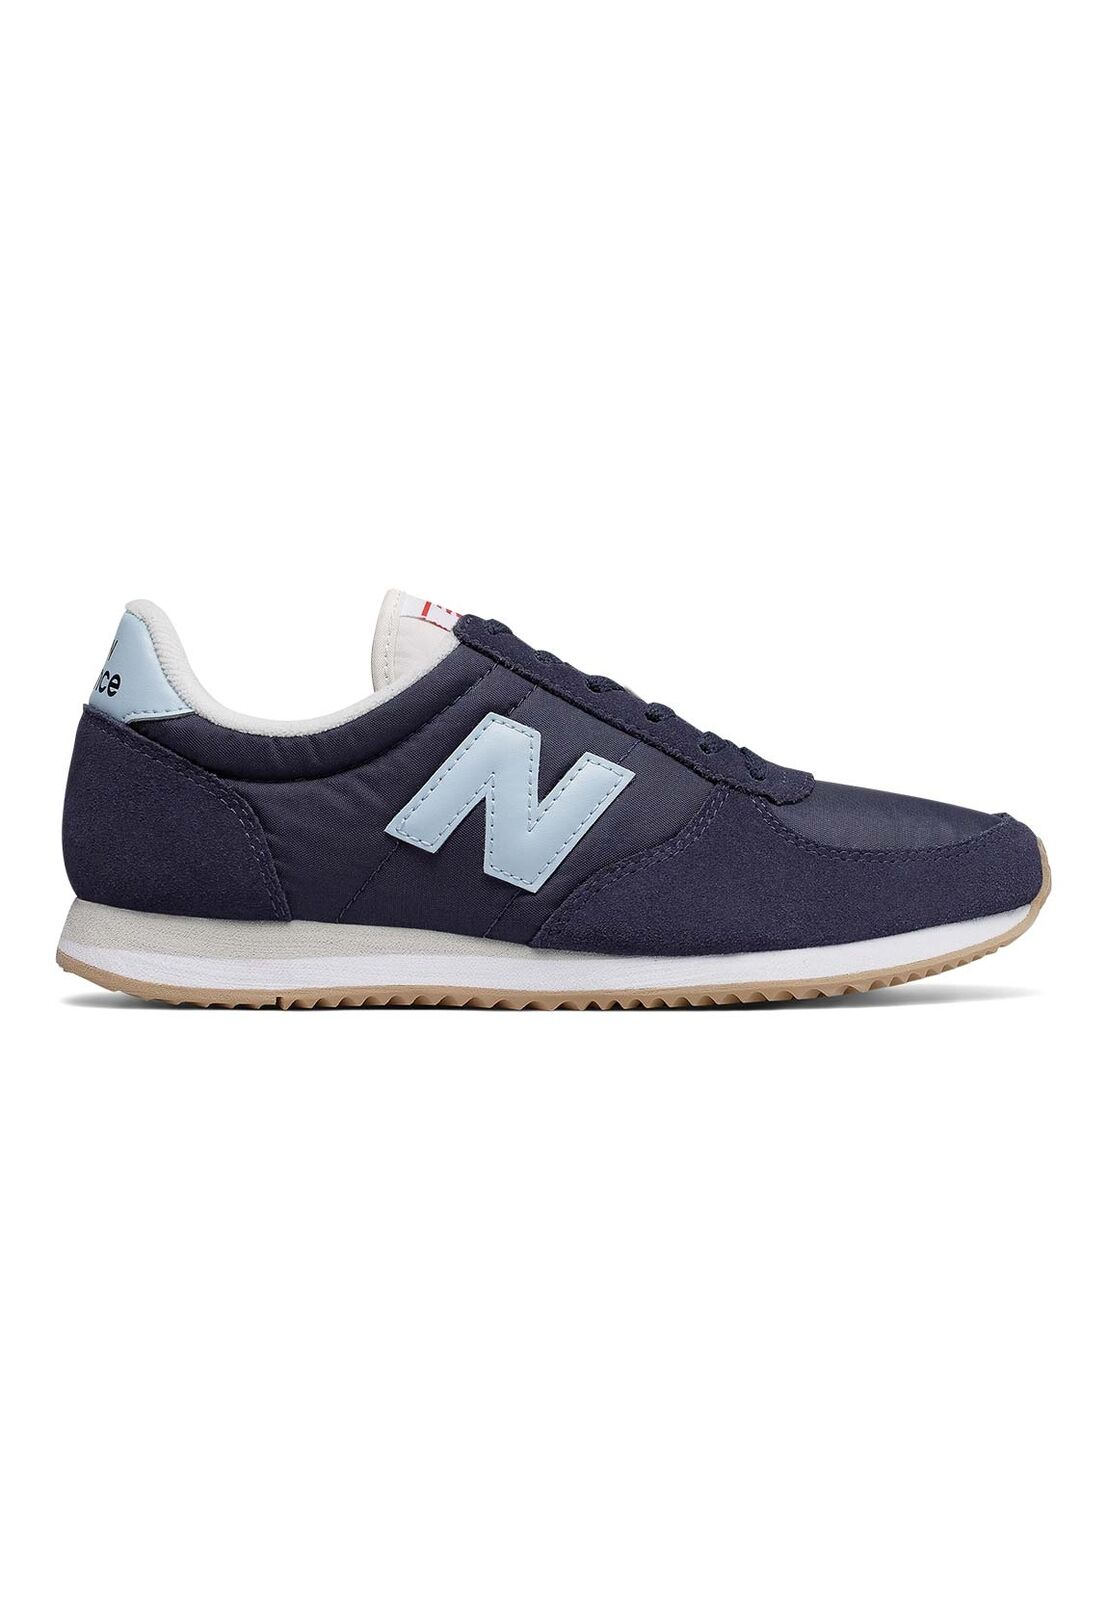 New Balance Sneaker Women's Wl220crc Dark bluee Navy